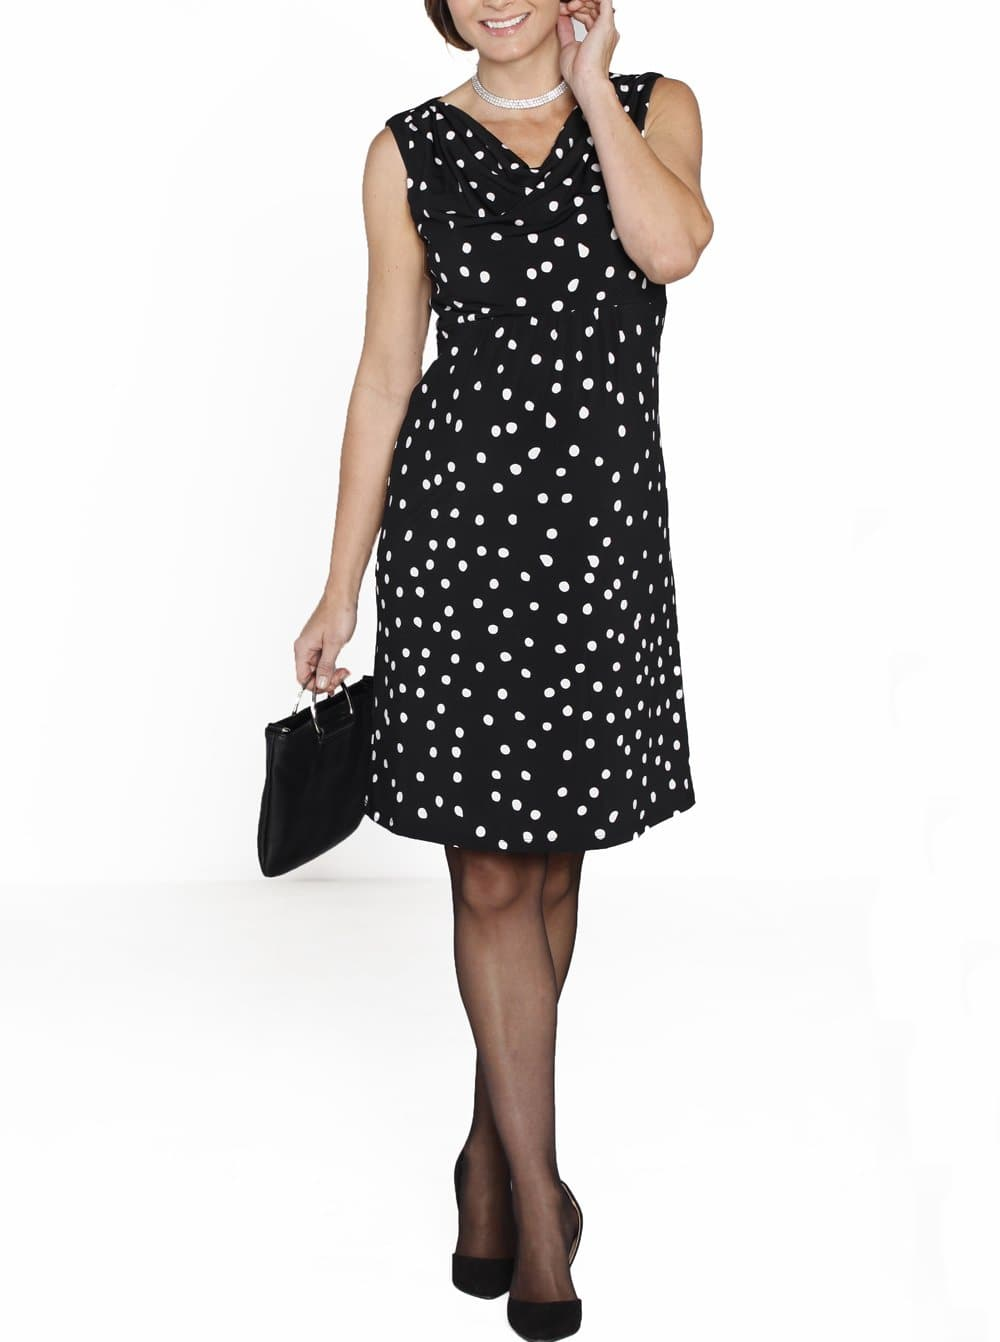 Maternity Cowl Neckline Party Dress - Polka Dots - Angel Maternity - Maternity clothes - shop online